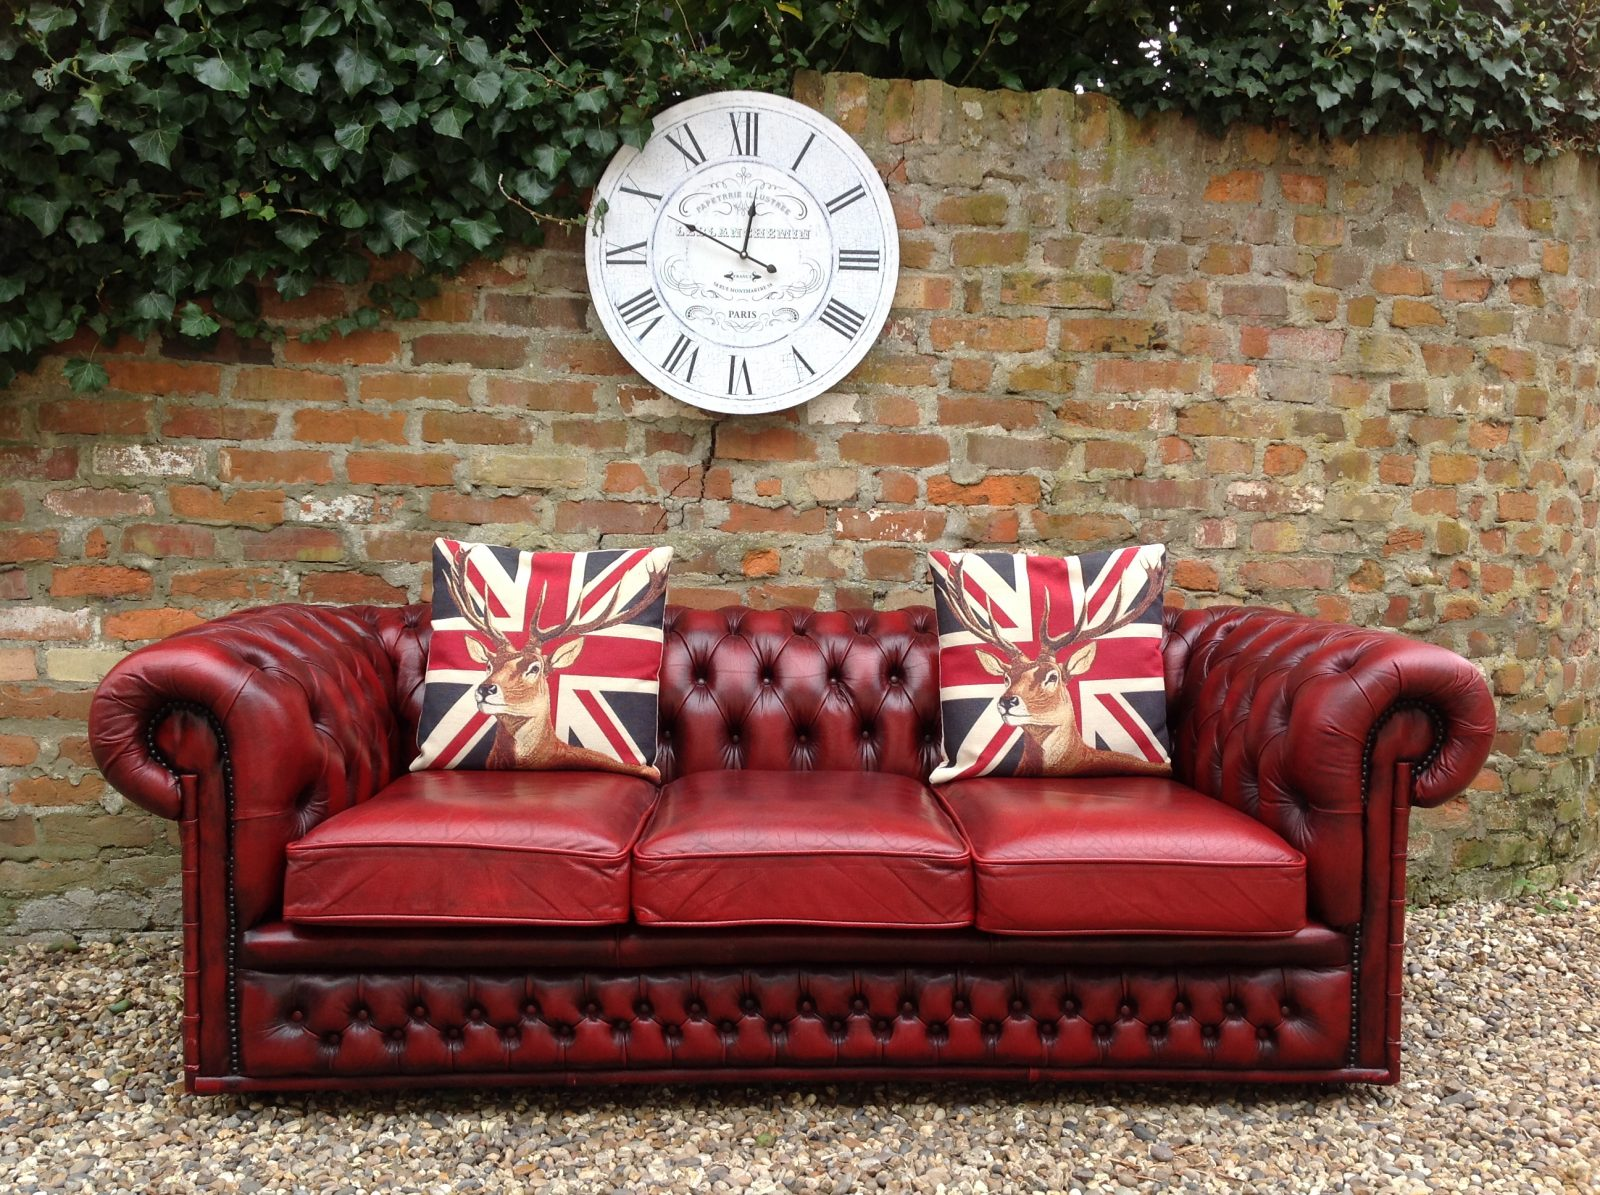 Superb Vintage Chesterfield Sofa.